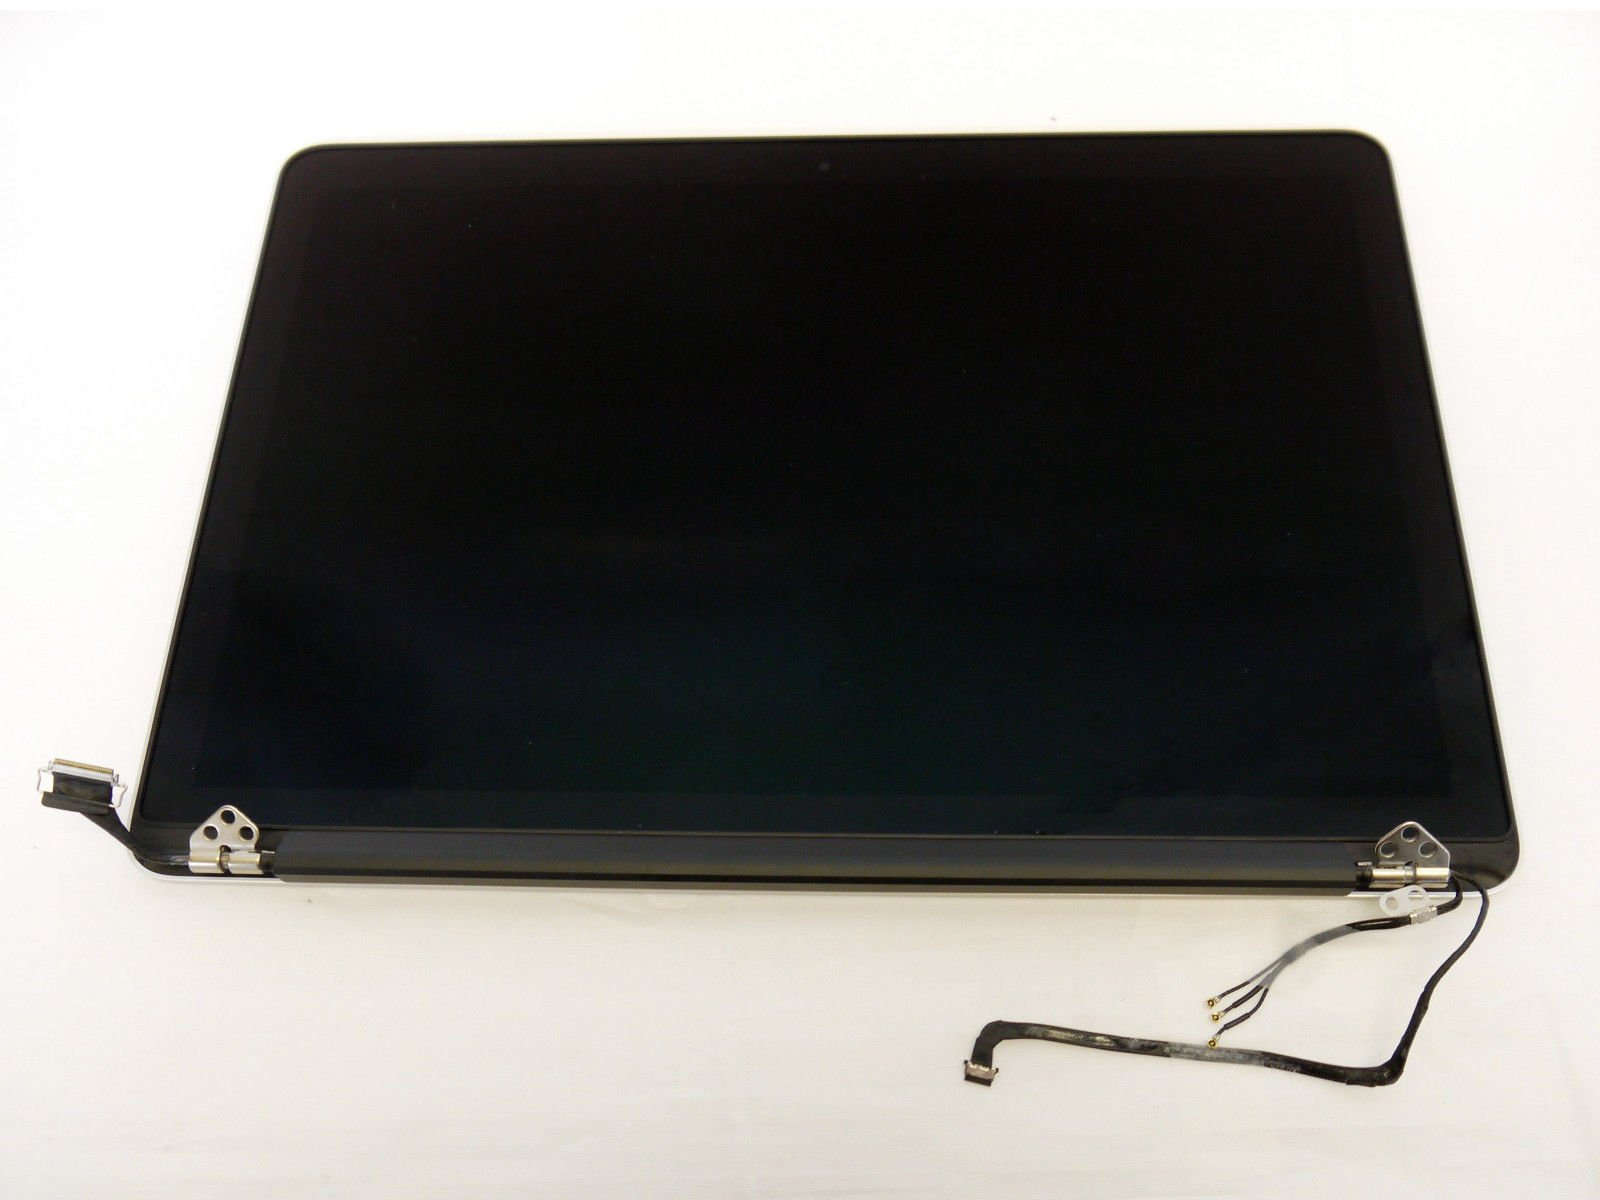 Apple Full LCD Screen with Retina Display for MacBook Pro 13 A1425 (MAC-13.3-ASSM-A1425)